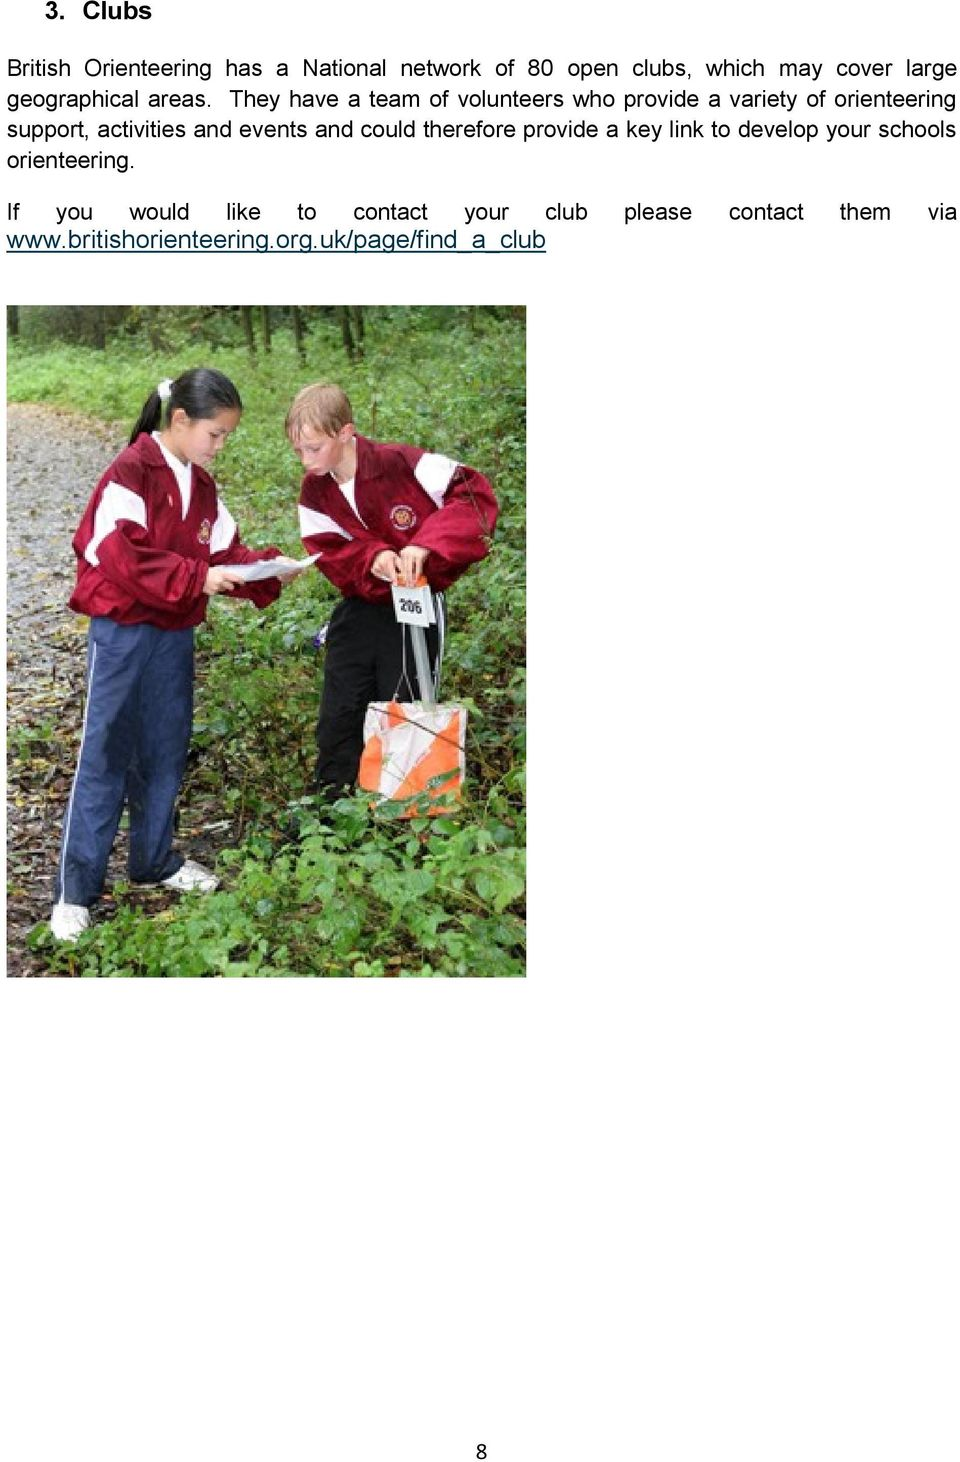 They have a team of volunteers who provide a variety of orienteering support, activities and events